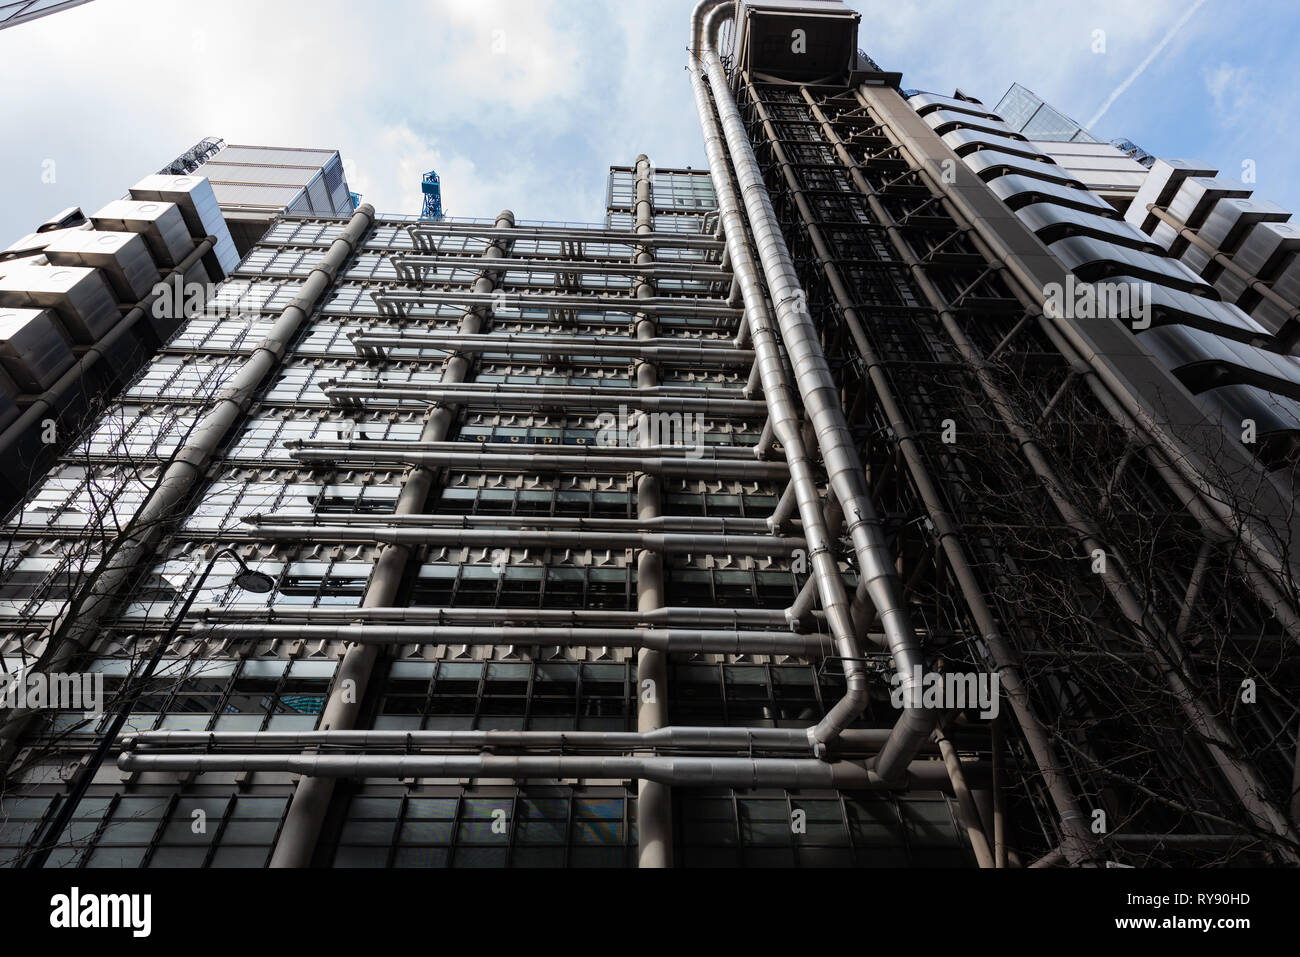 Richard Rogers' Lloyds Building wears its services on the outside of the building leaving the interior uncluttered - Stock Image